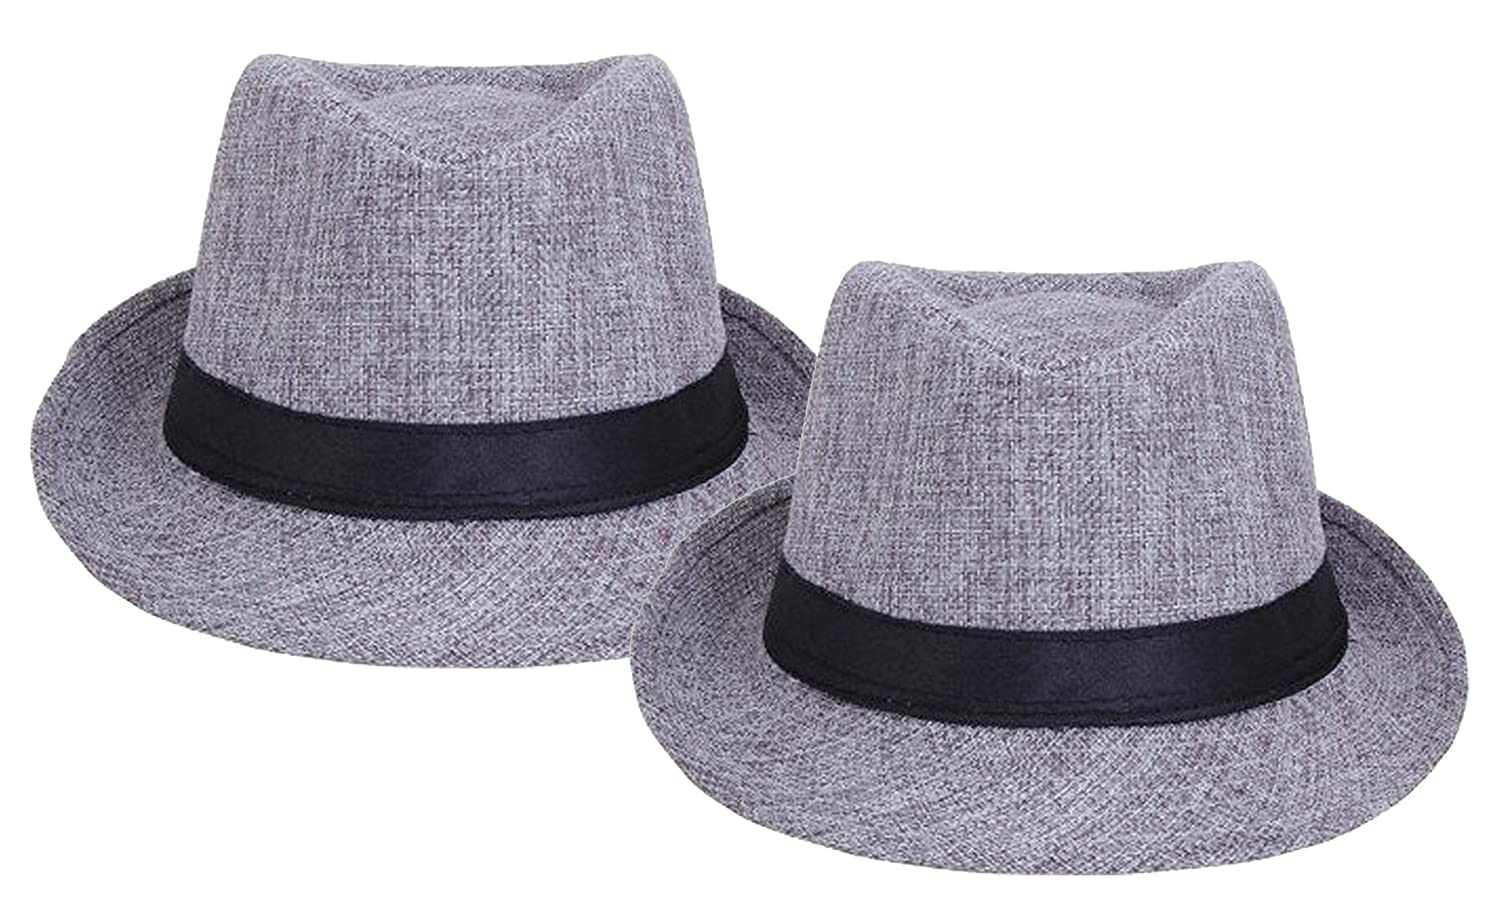 Natali Summer Gifts For Men Boys Fedora Casual Sun Hats Caps Hats